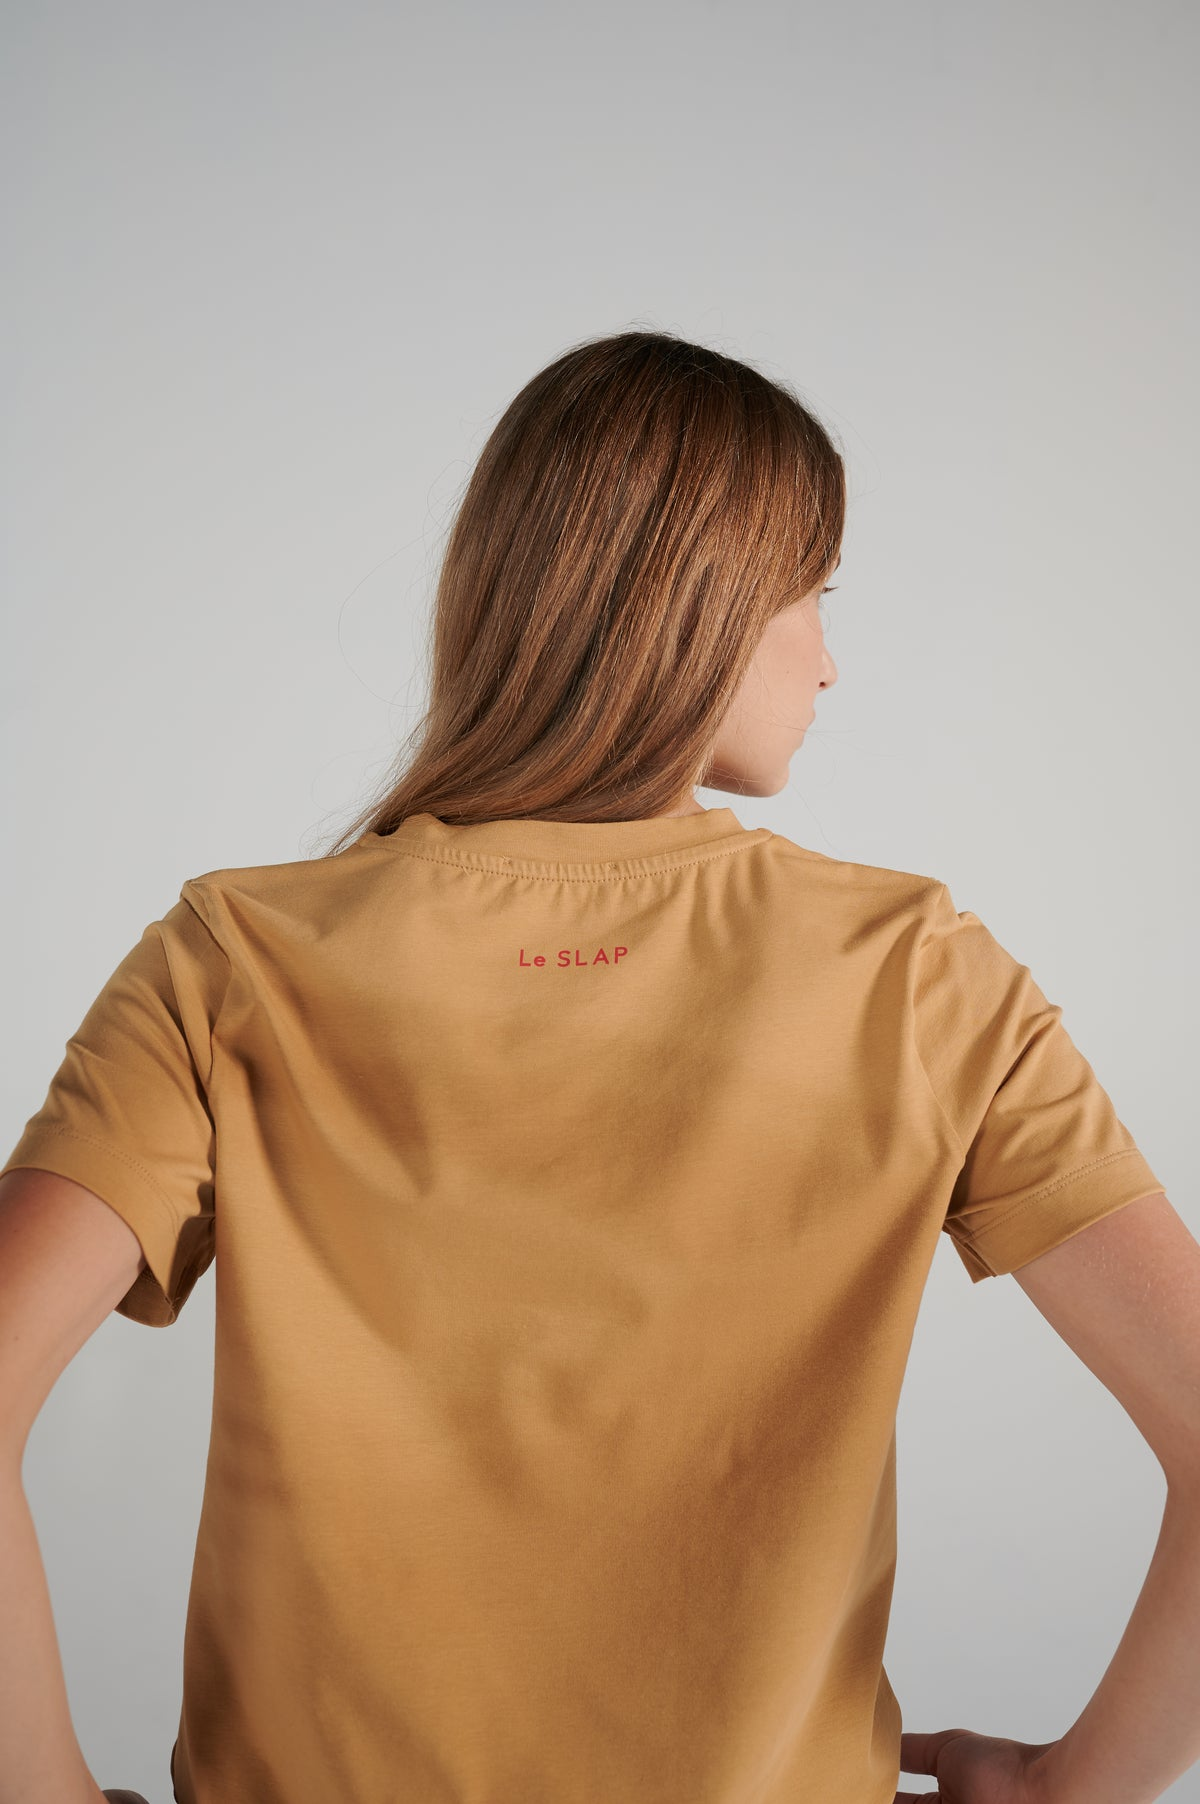 le-slap-red-logo-on-the-back-nude-lifetime-slim-fit-nude-cotton-tshirt.jpg